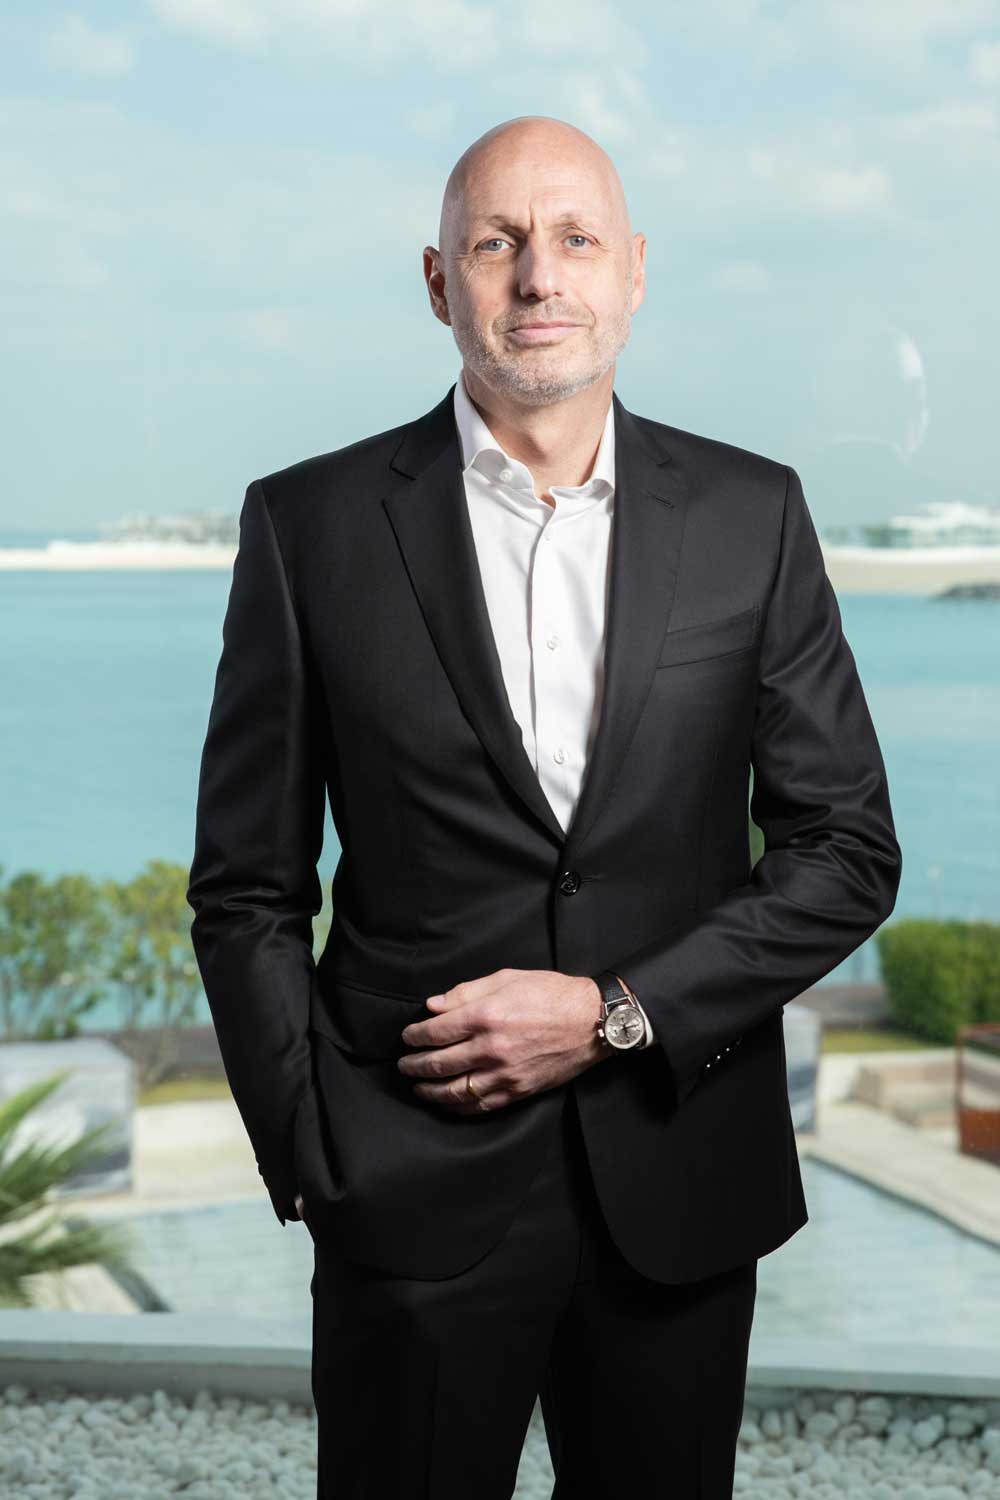 Stéphane Bianchi becomes CEO of LVMH Watches and Jewelry Division from 1 July 2020